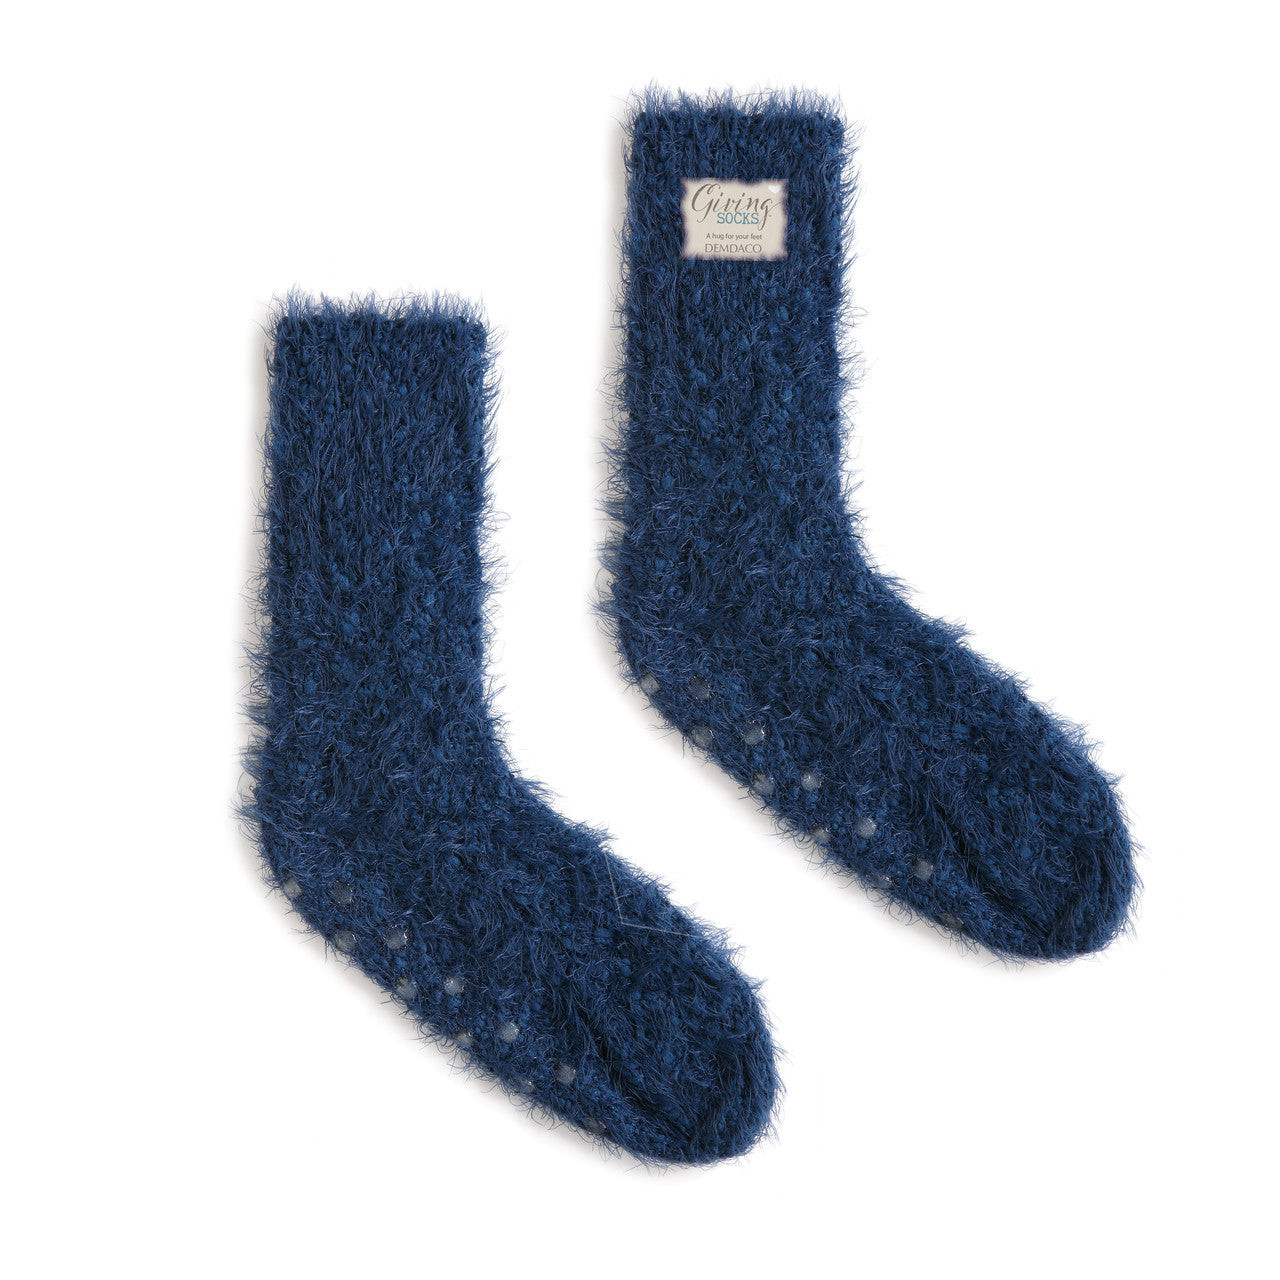 Navy Giving Socks